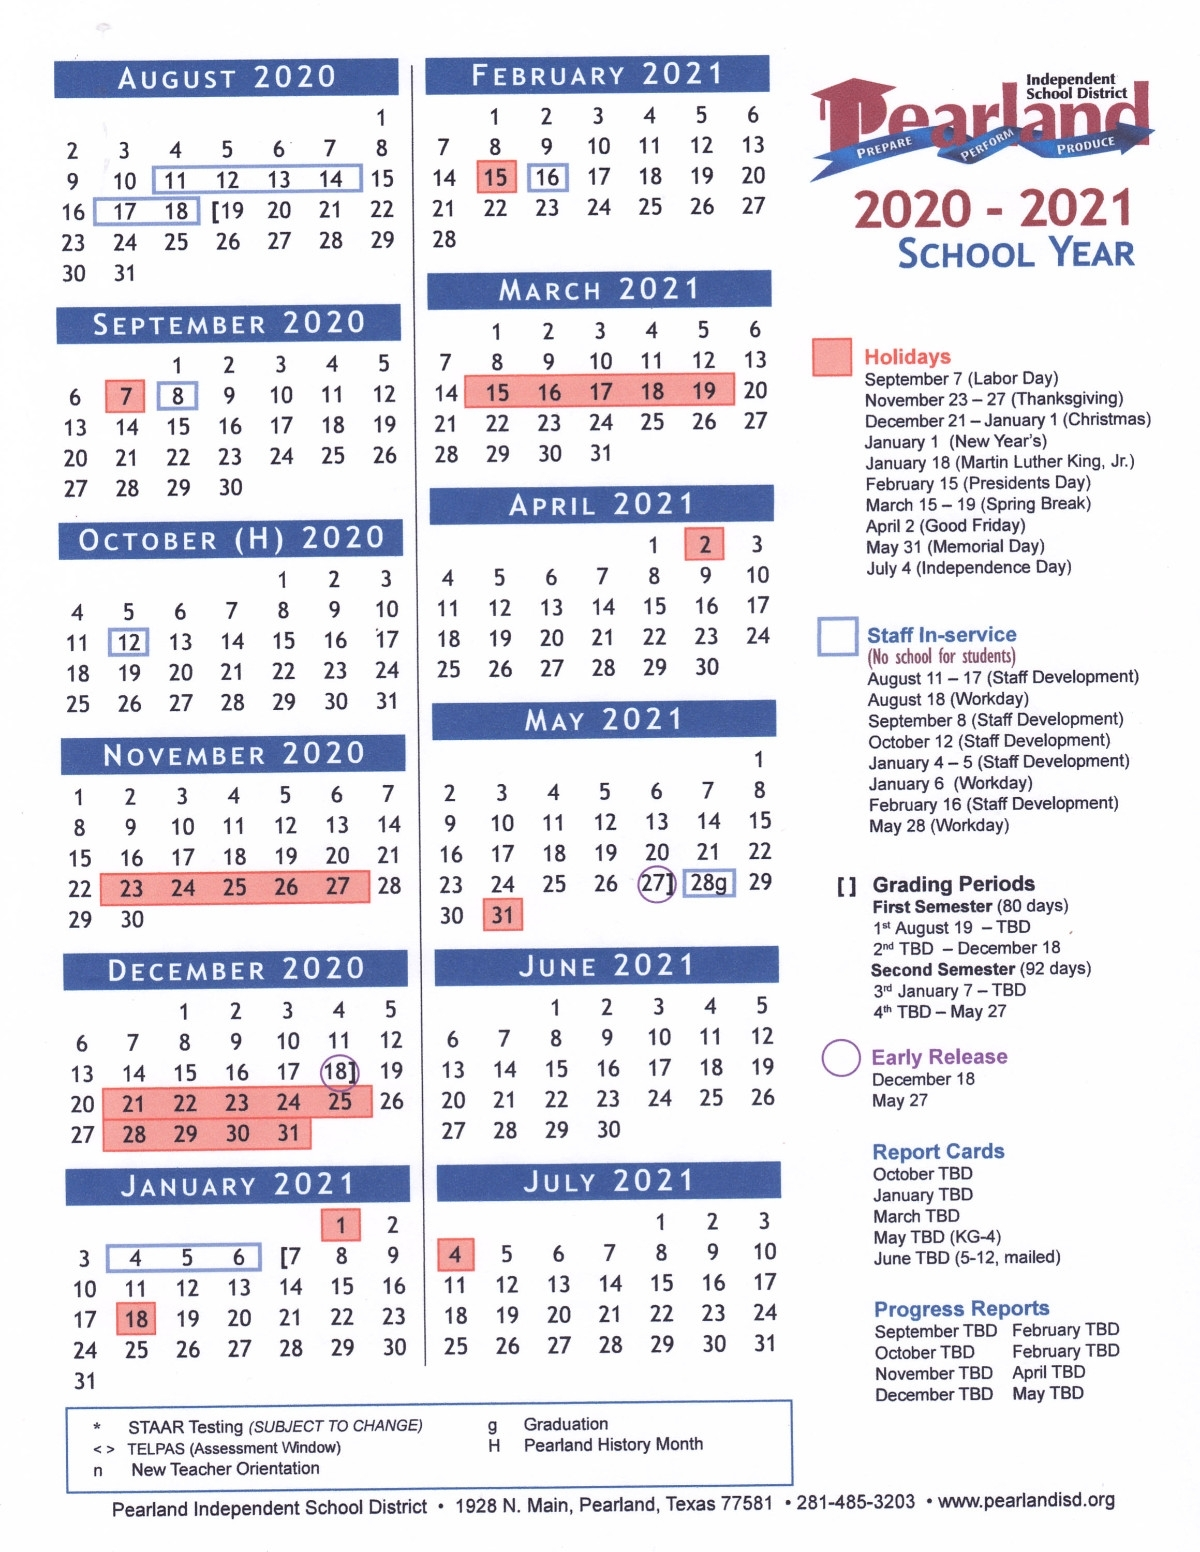 Pearland Isd 2020/2021 Calendar Has Been Approved